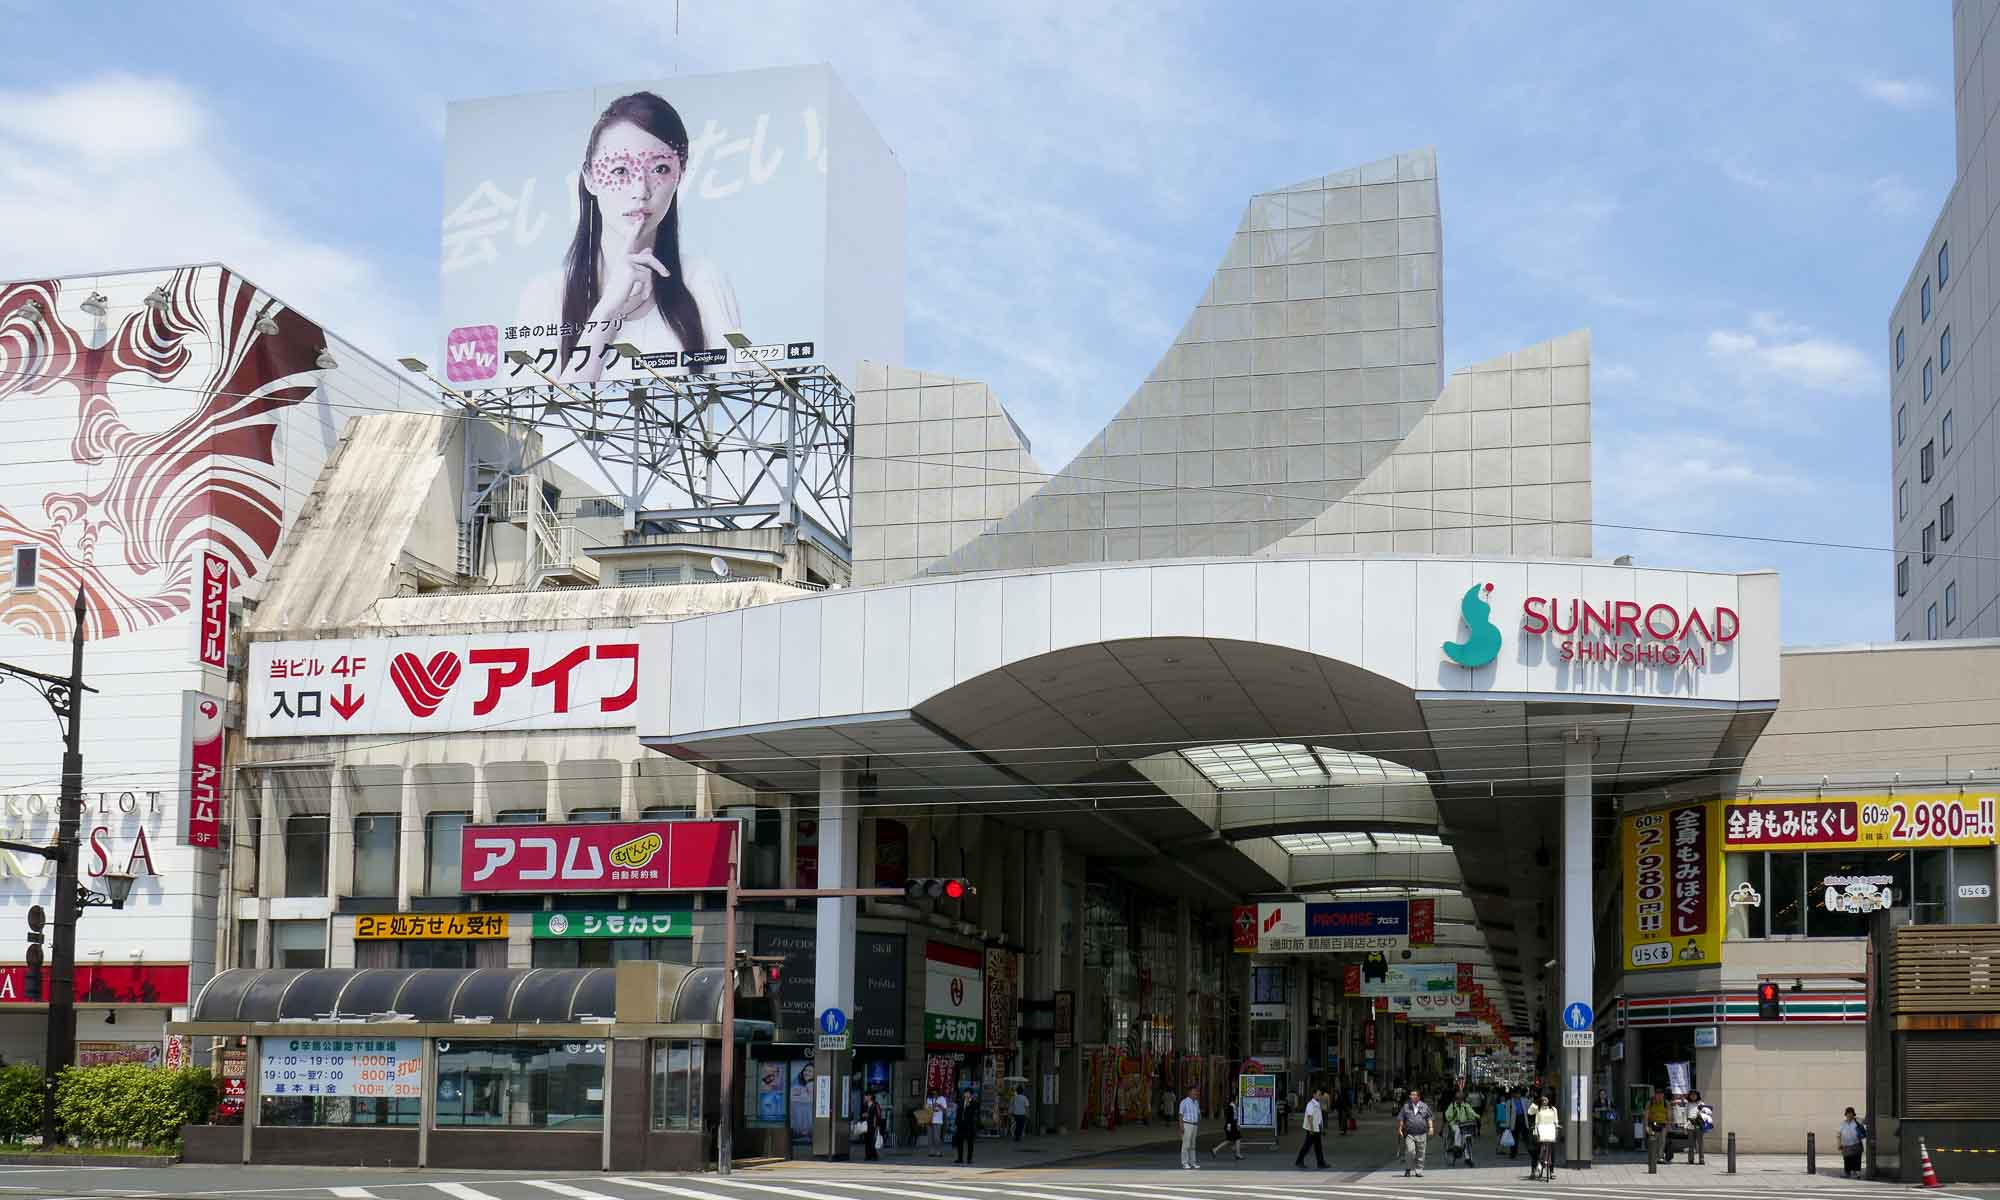 Shopping mall in Shinshigai area, close to our hotel